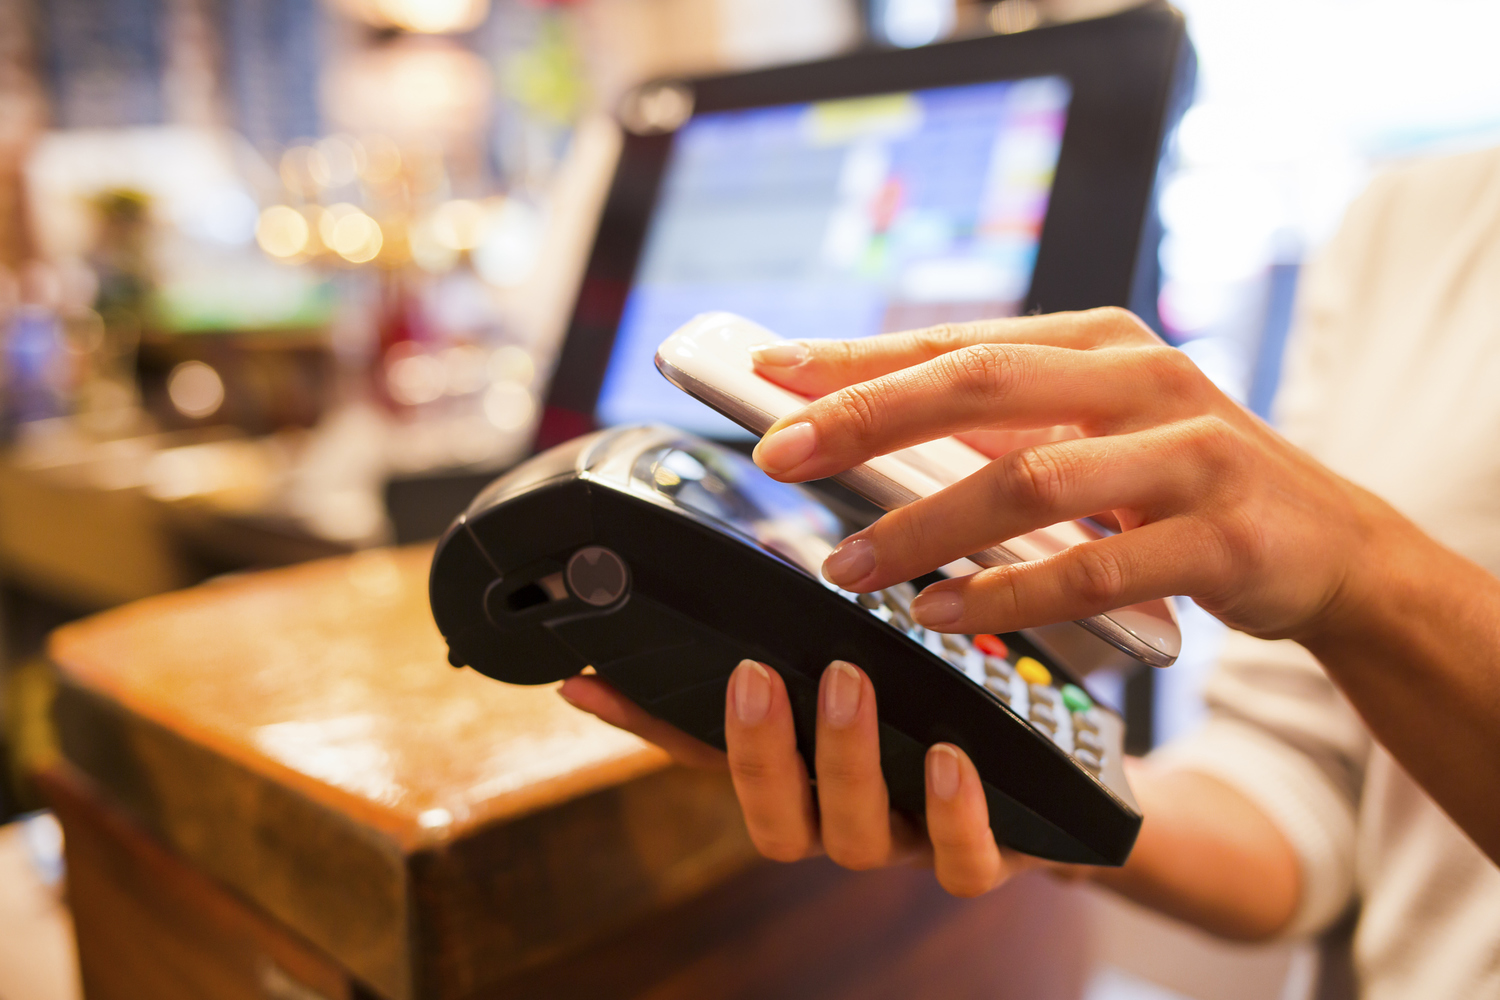 Holding phone over credit card reader